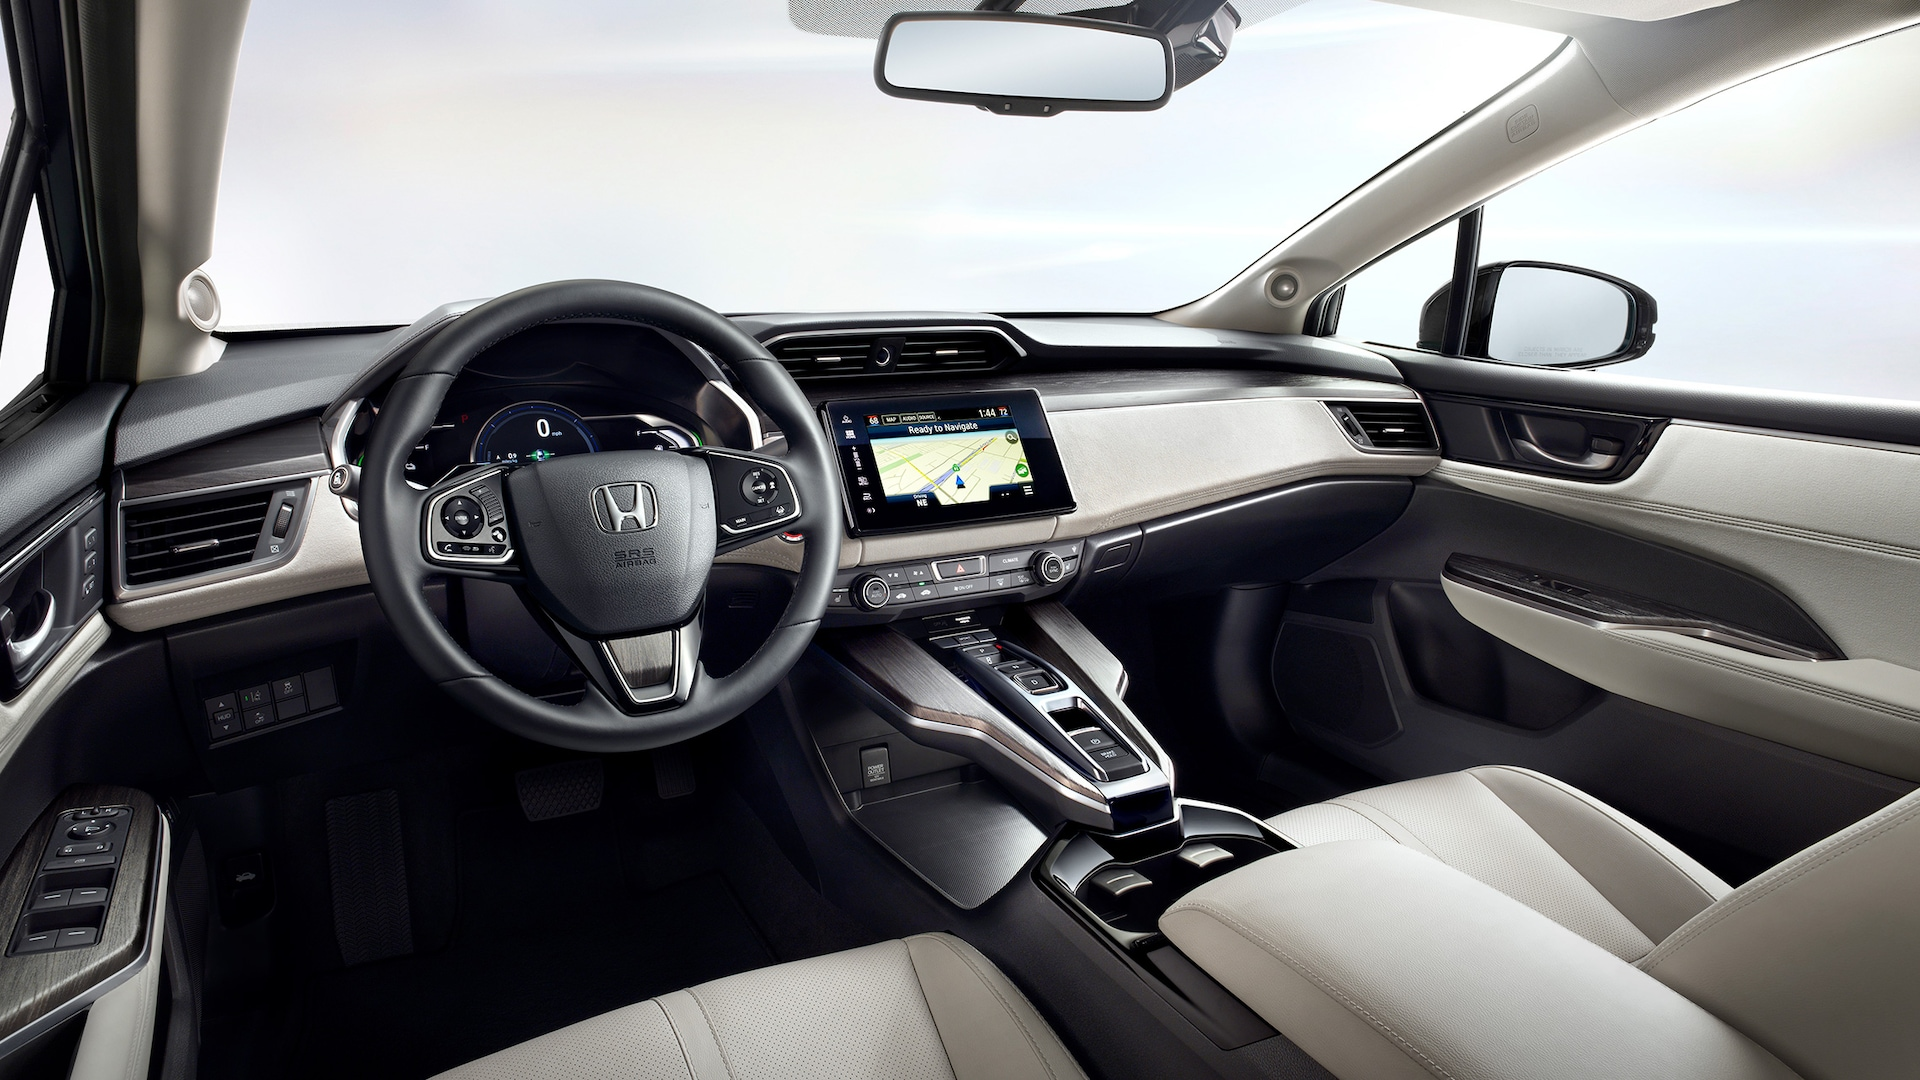 Driver's point of view of instrument panel of 2020 Honda Clarity Fuel Cell.